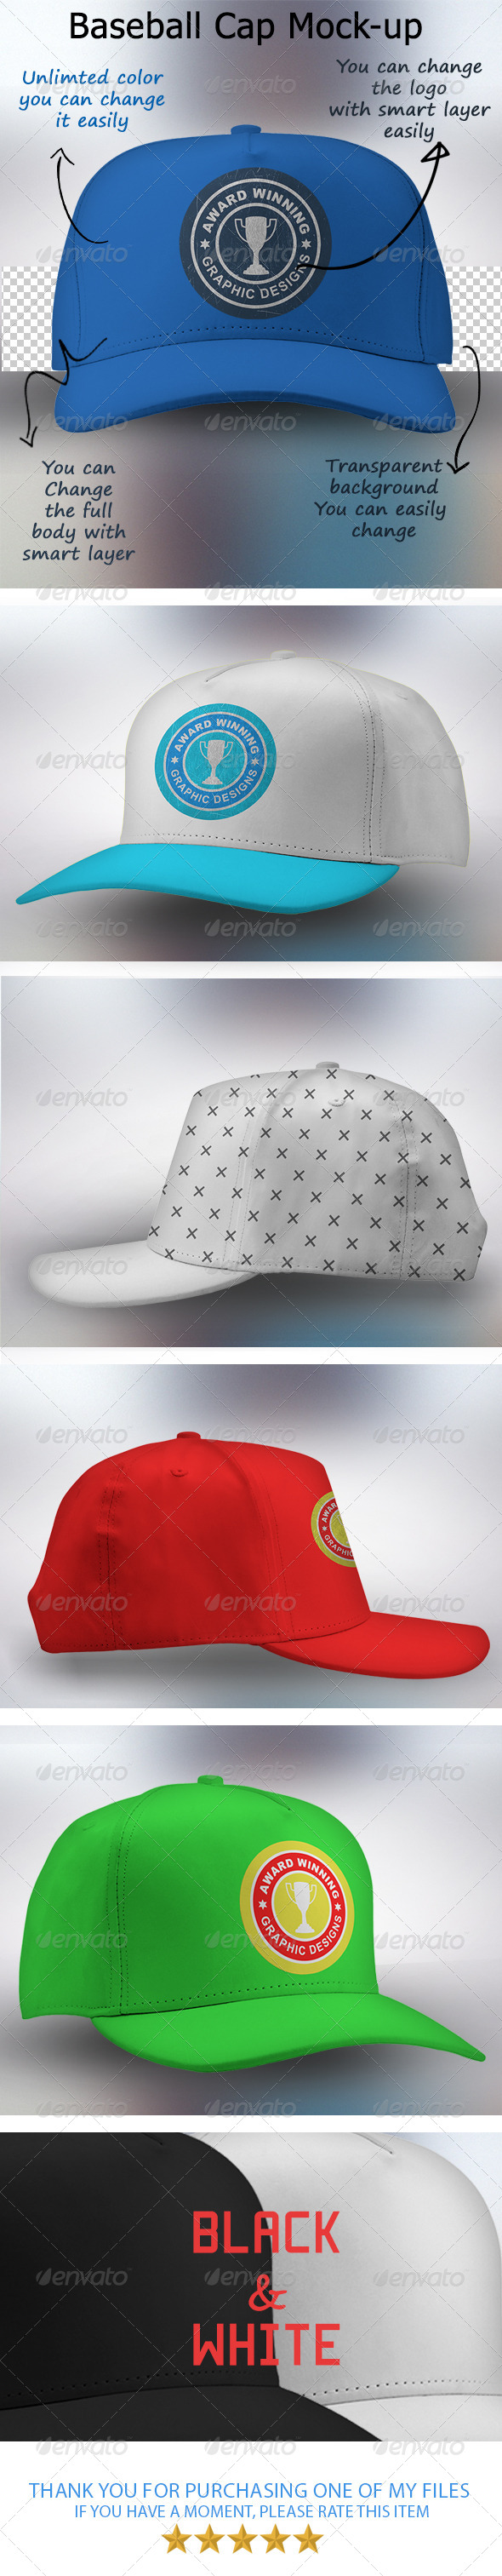 GraphicRiver Baseball Cap Mock-up 7631754